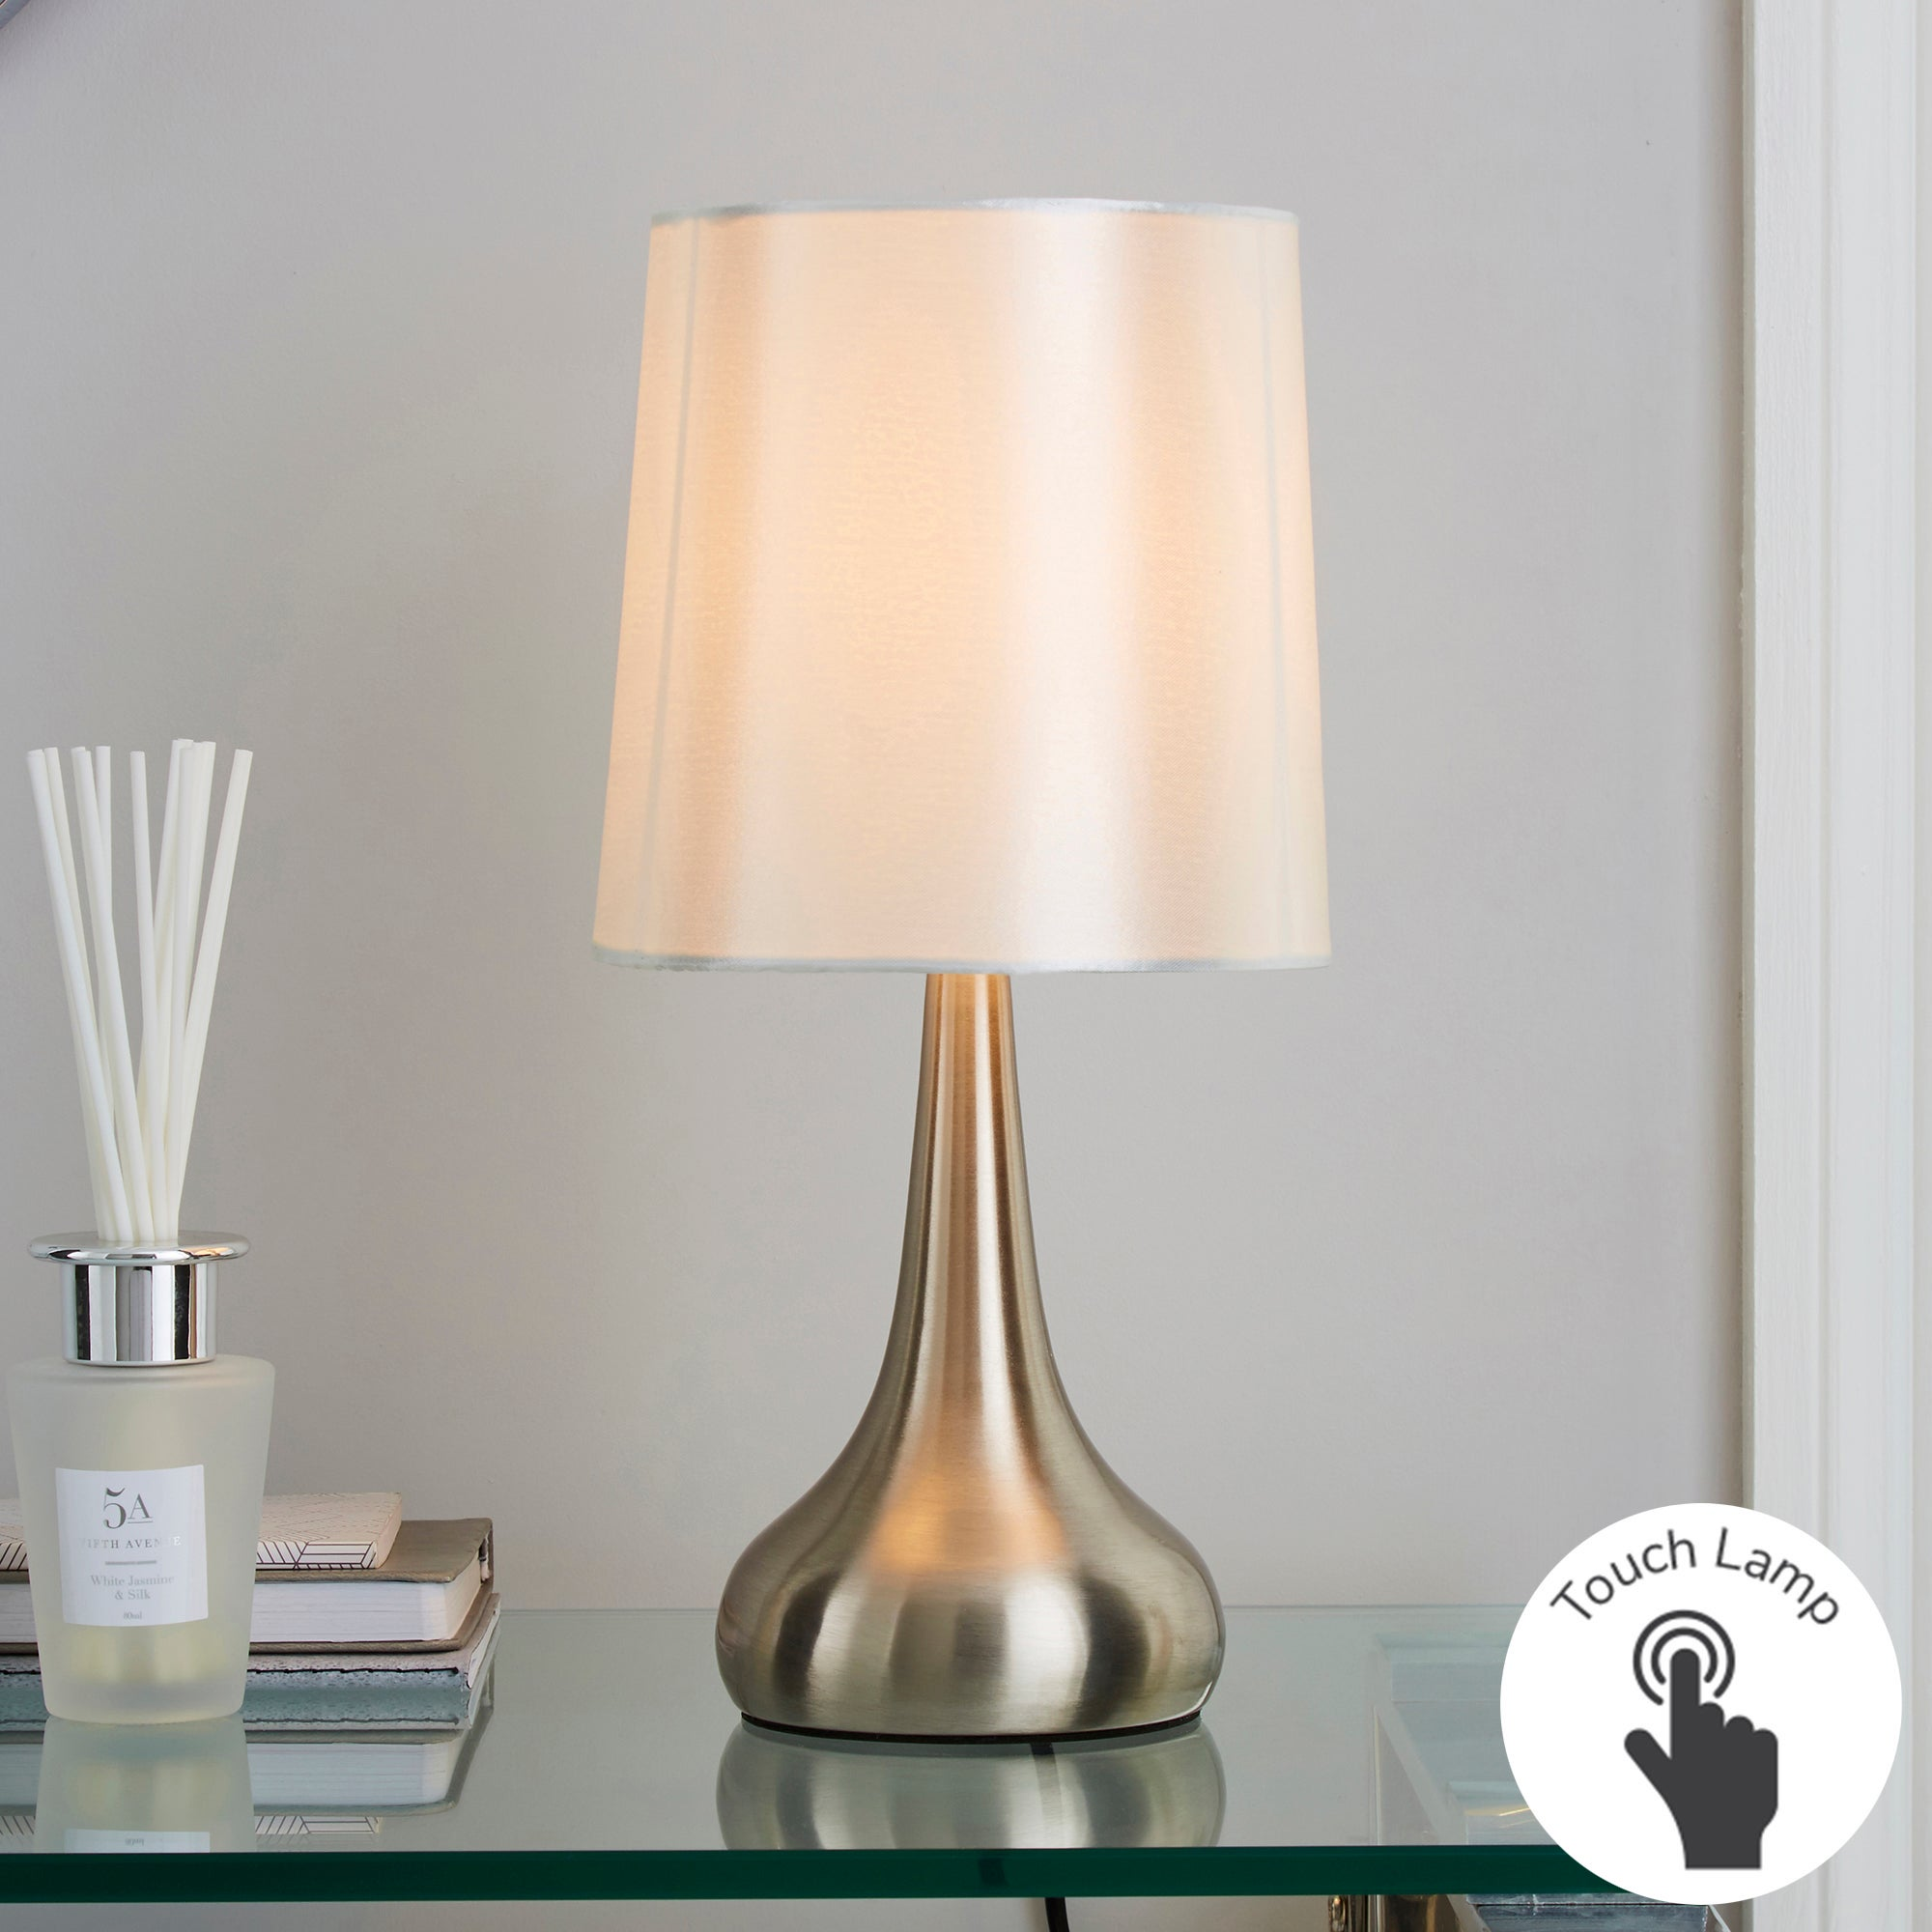 2 touch lamps for 10 buy 2 for 20 at argos hotukdeals for Bedside table lamp shades